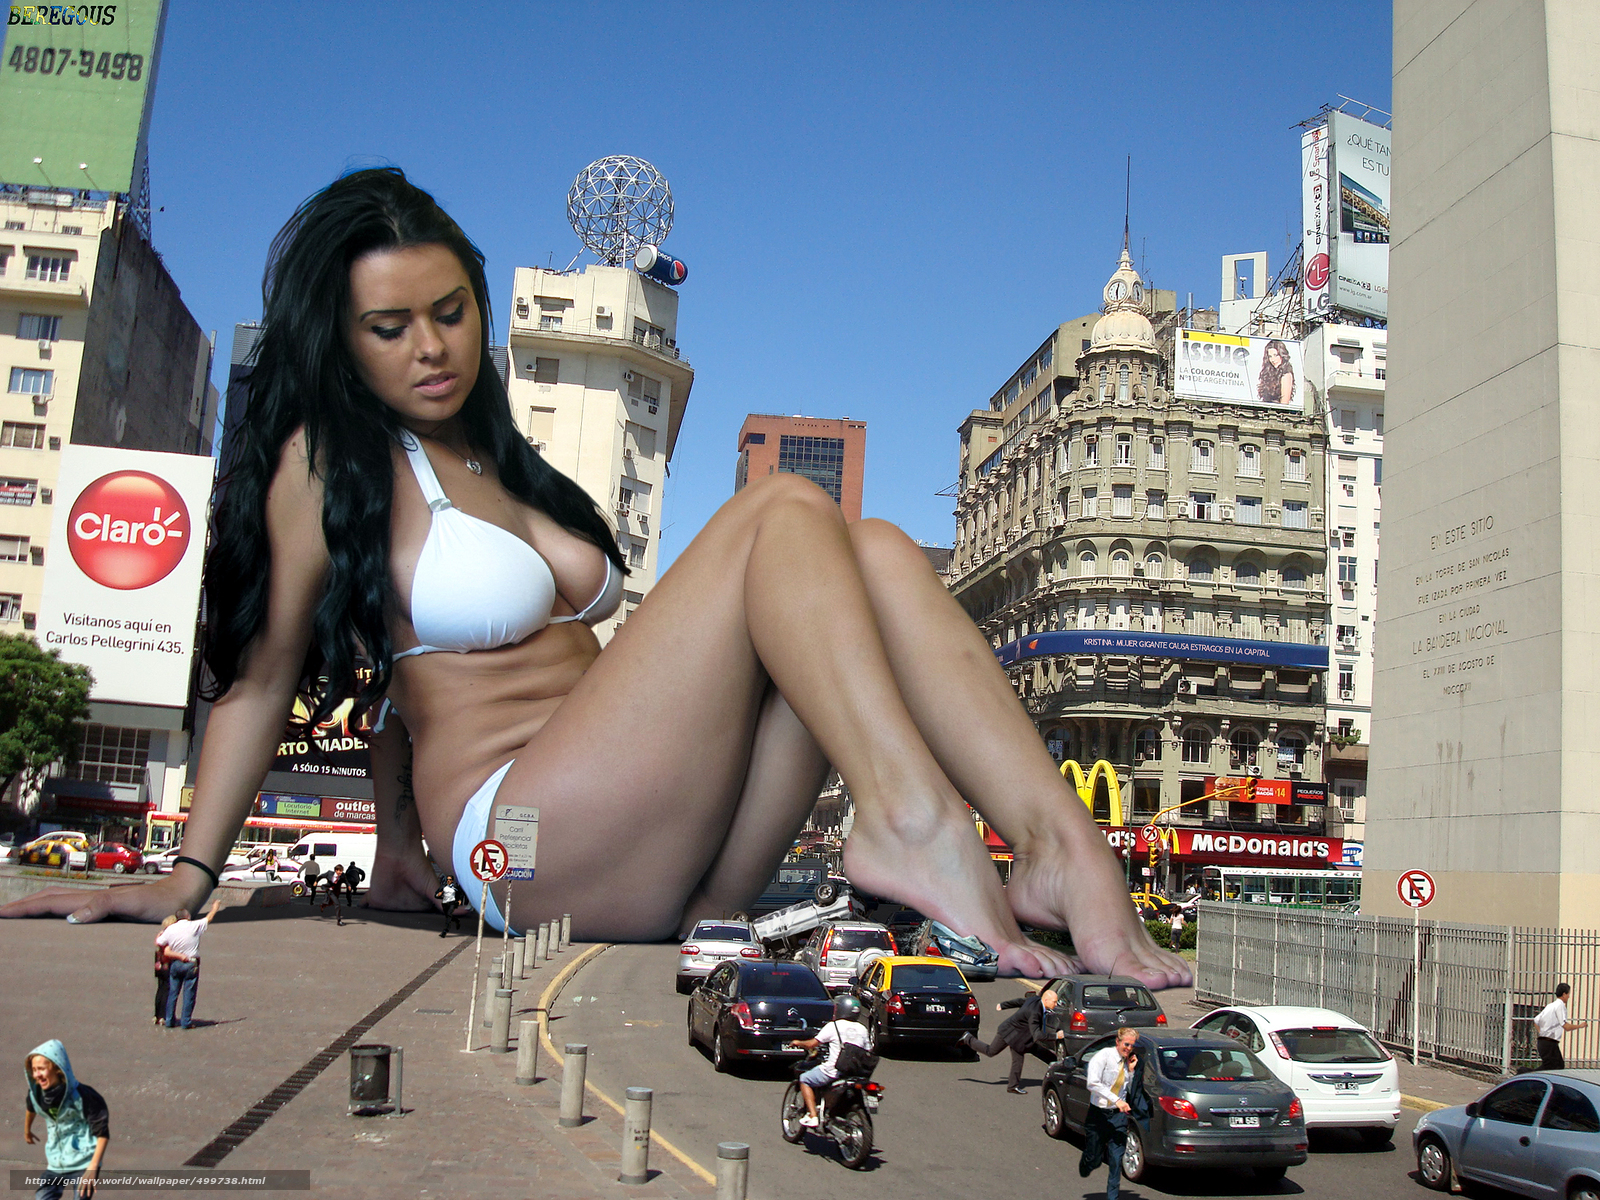 Giantess nude in the city hentia images